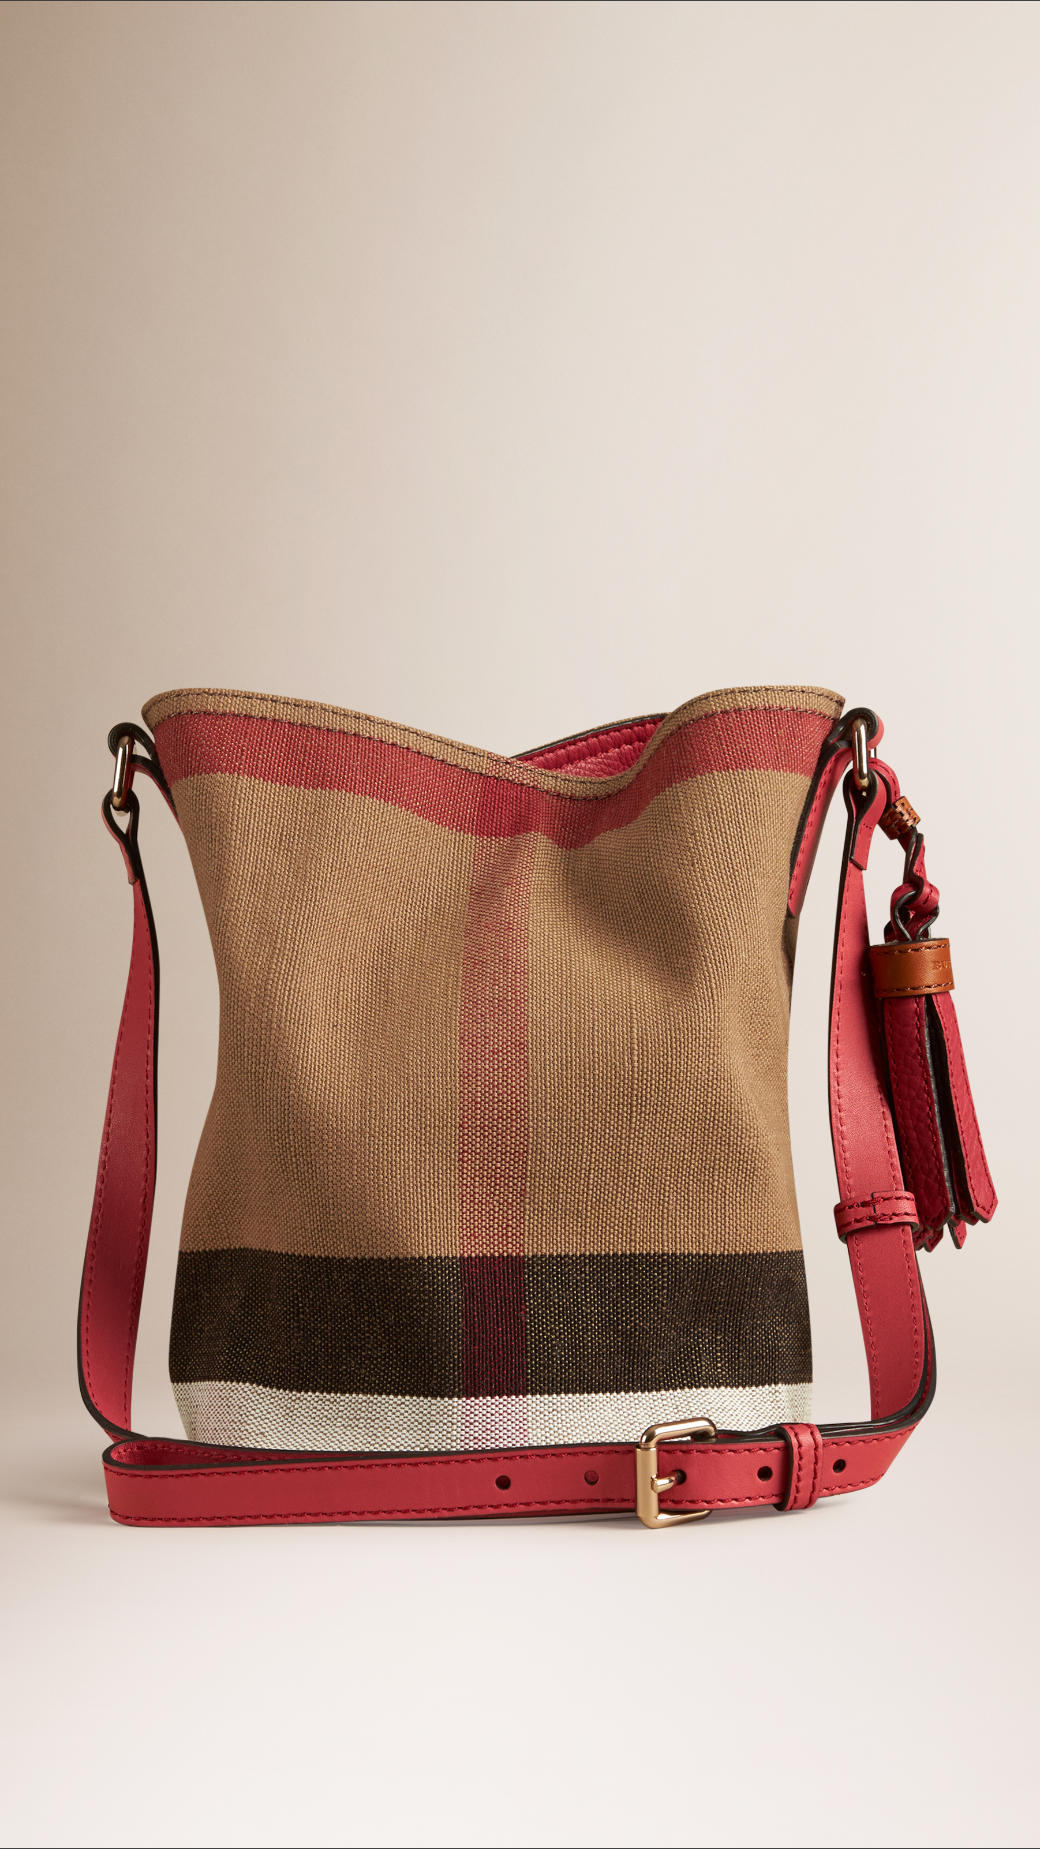 5e615b415937 Lyst - Burberry Mini Canvas Check Crossbody Bag in Pink